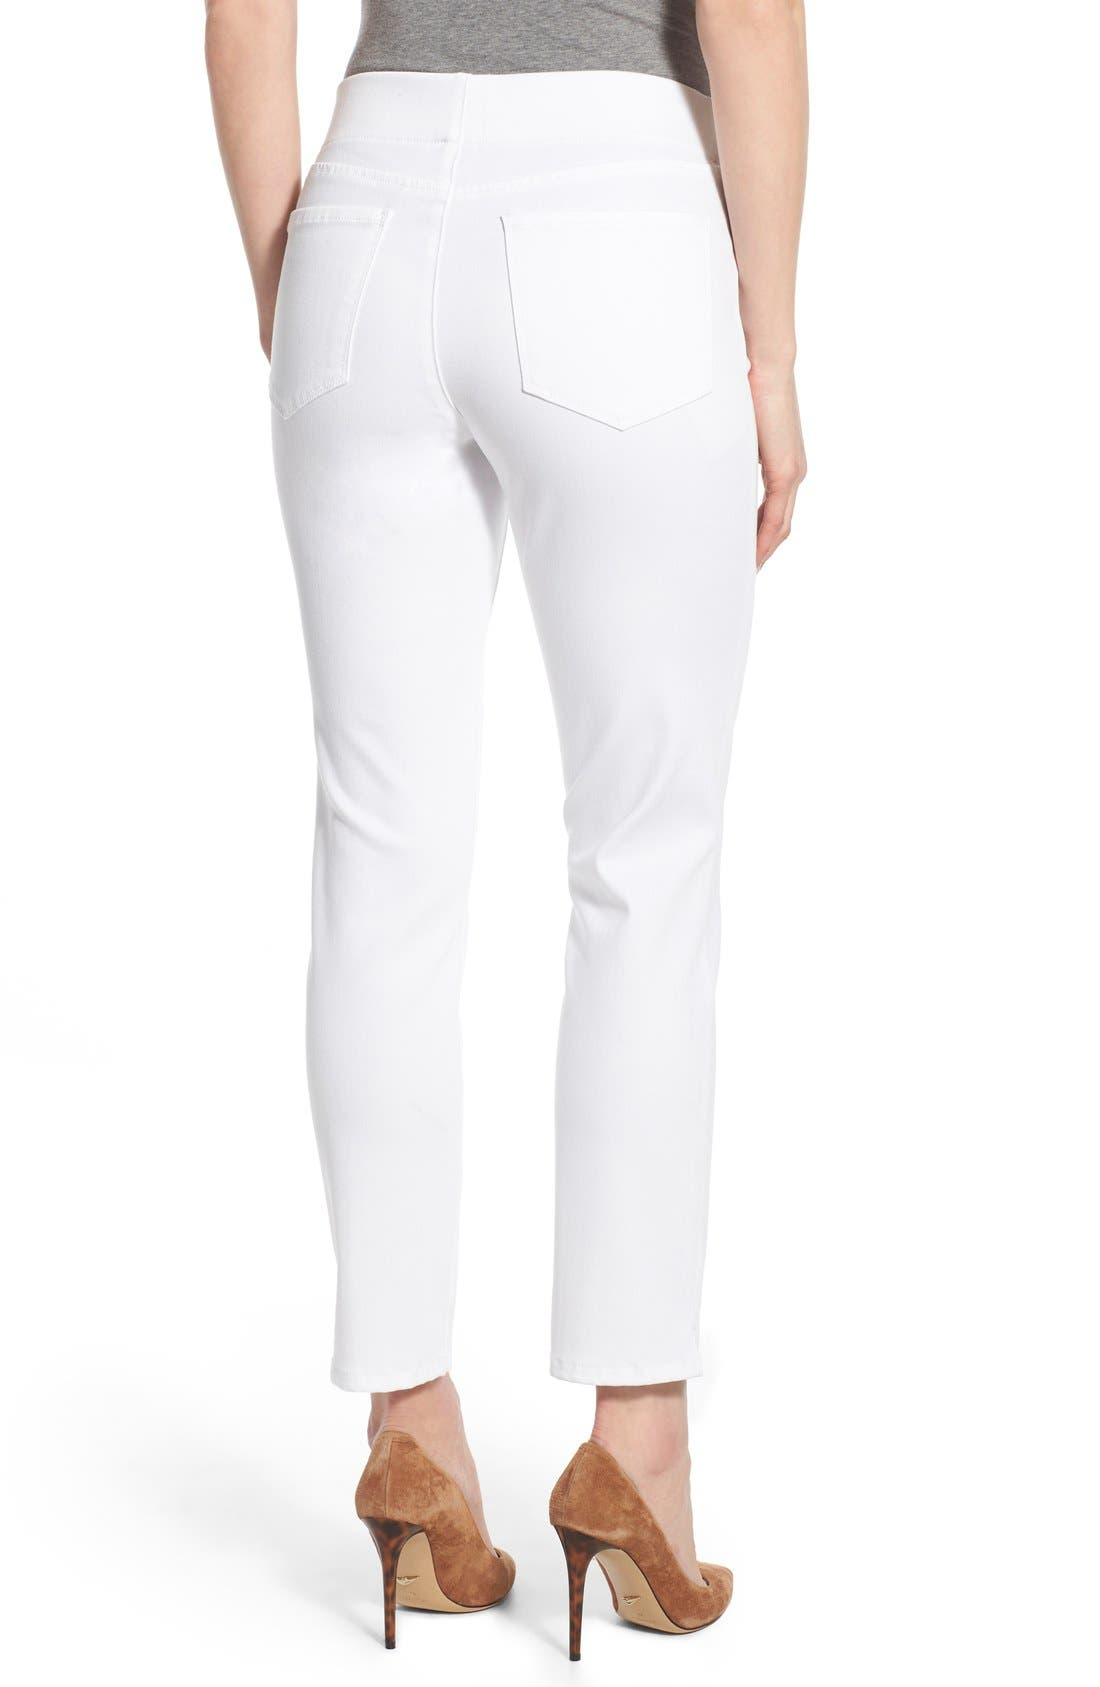 'Millie' Pull-On Stretch Ankle Skinny Jeans,                             Alternate thumbnail 7, color,                             198